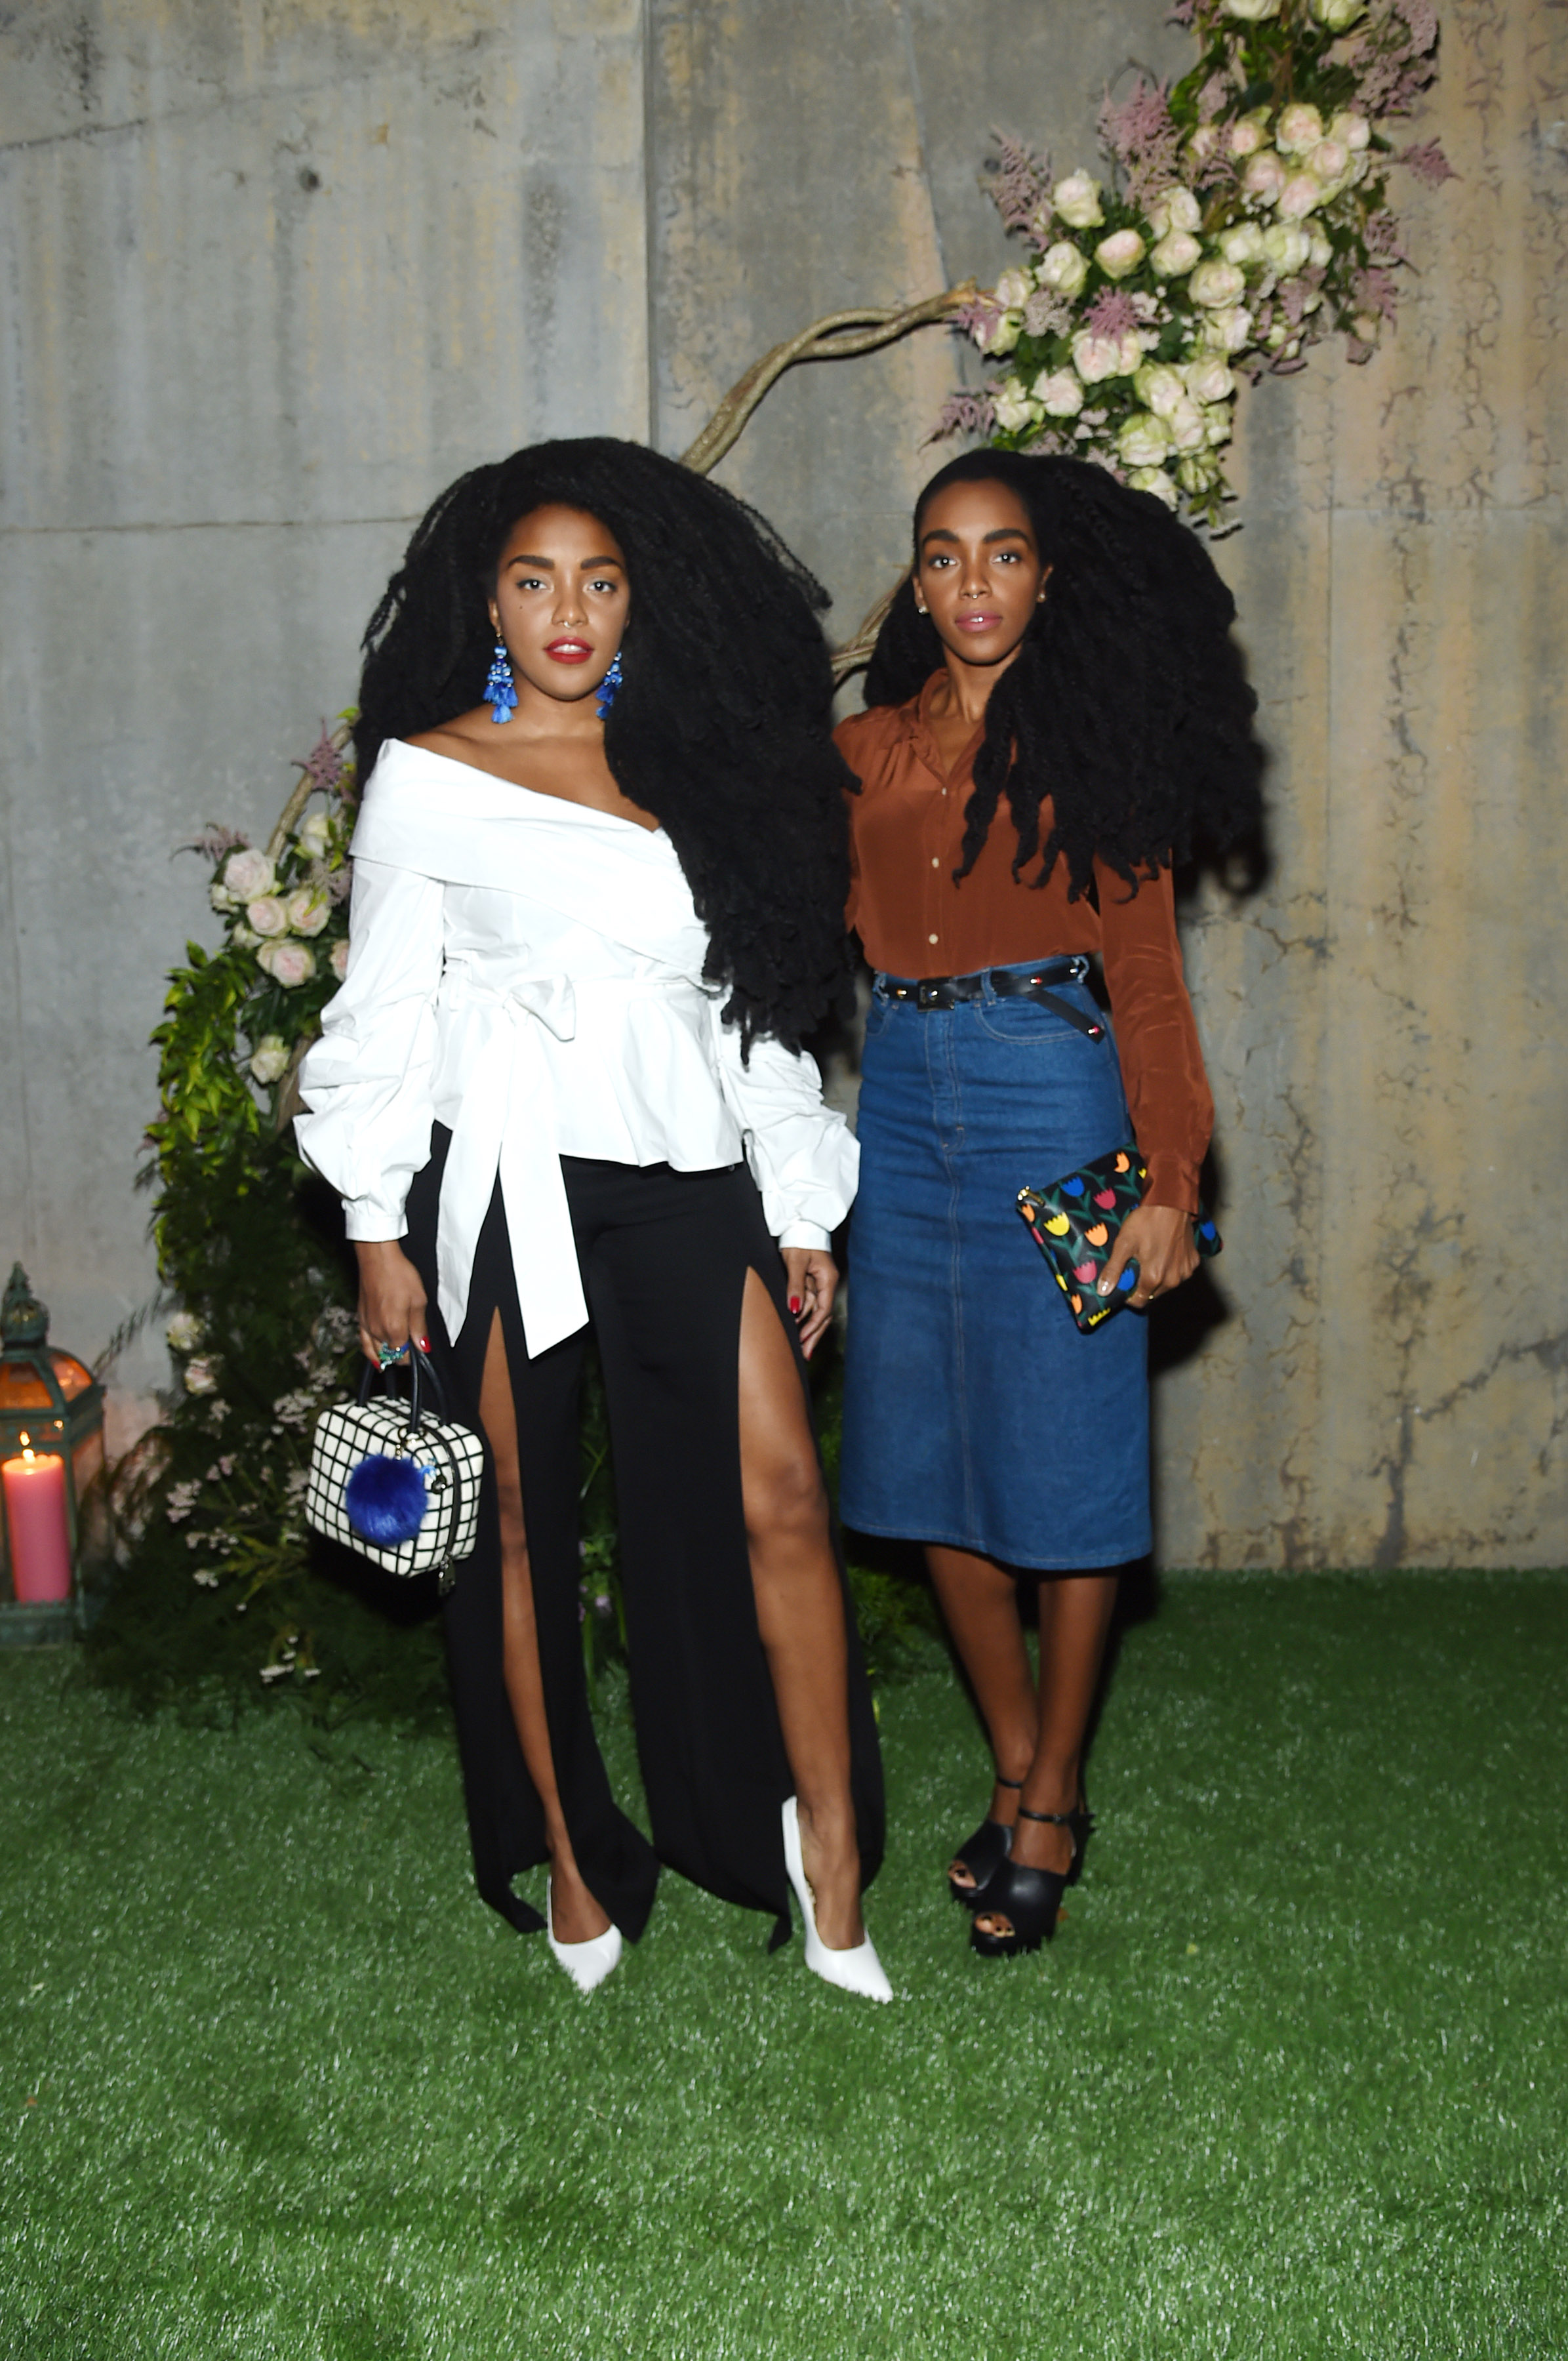 NEW YORK, NY - MAY 02: Models Cipriana Quann and TK Quann attend the Gucci Bloom Fragrance Launch at MoMA PS.1 on May 2, 2017 in New York City. (Photo by Jamie McCarthy/Getty Images for Gucci)